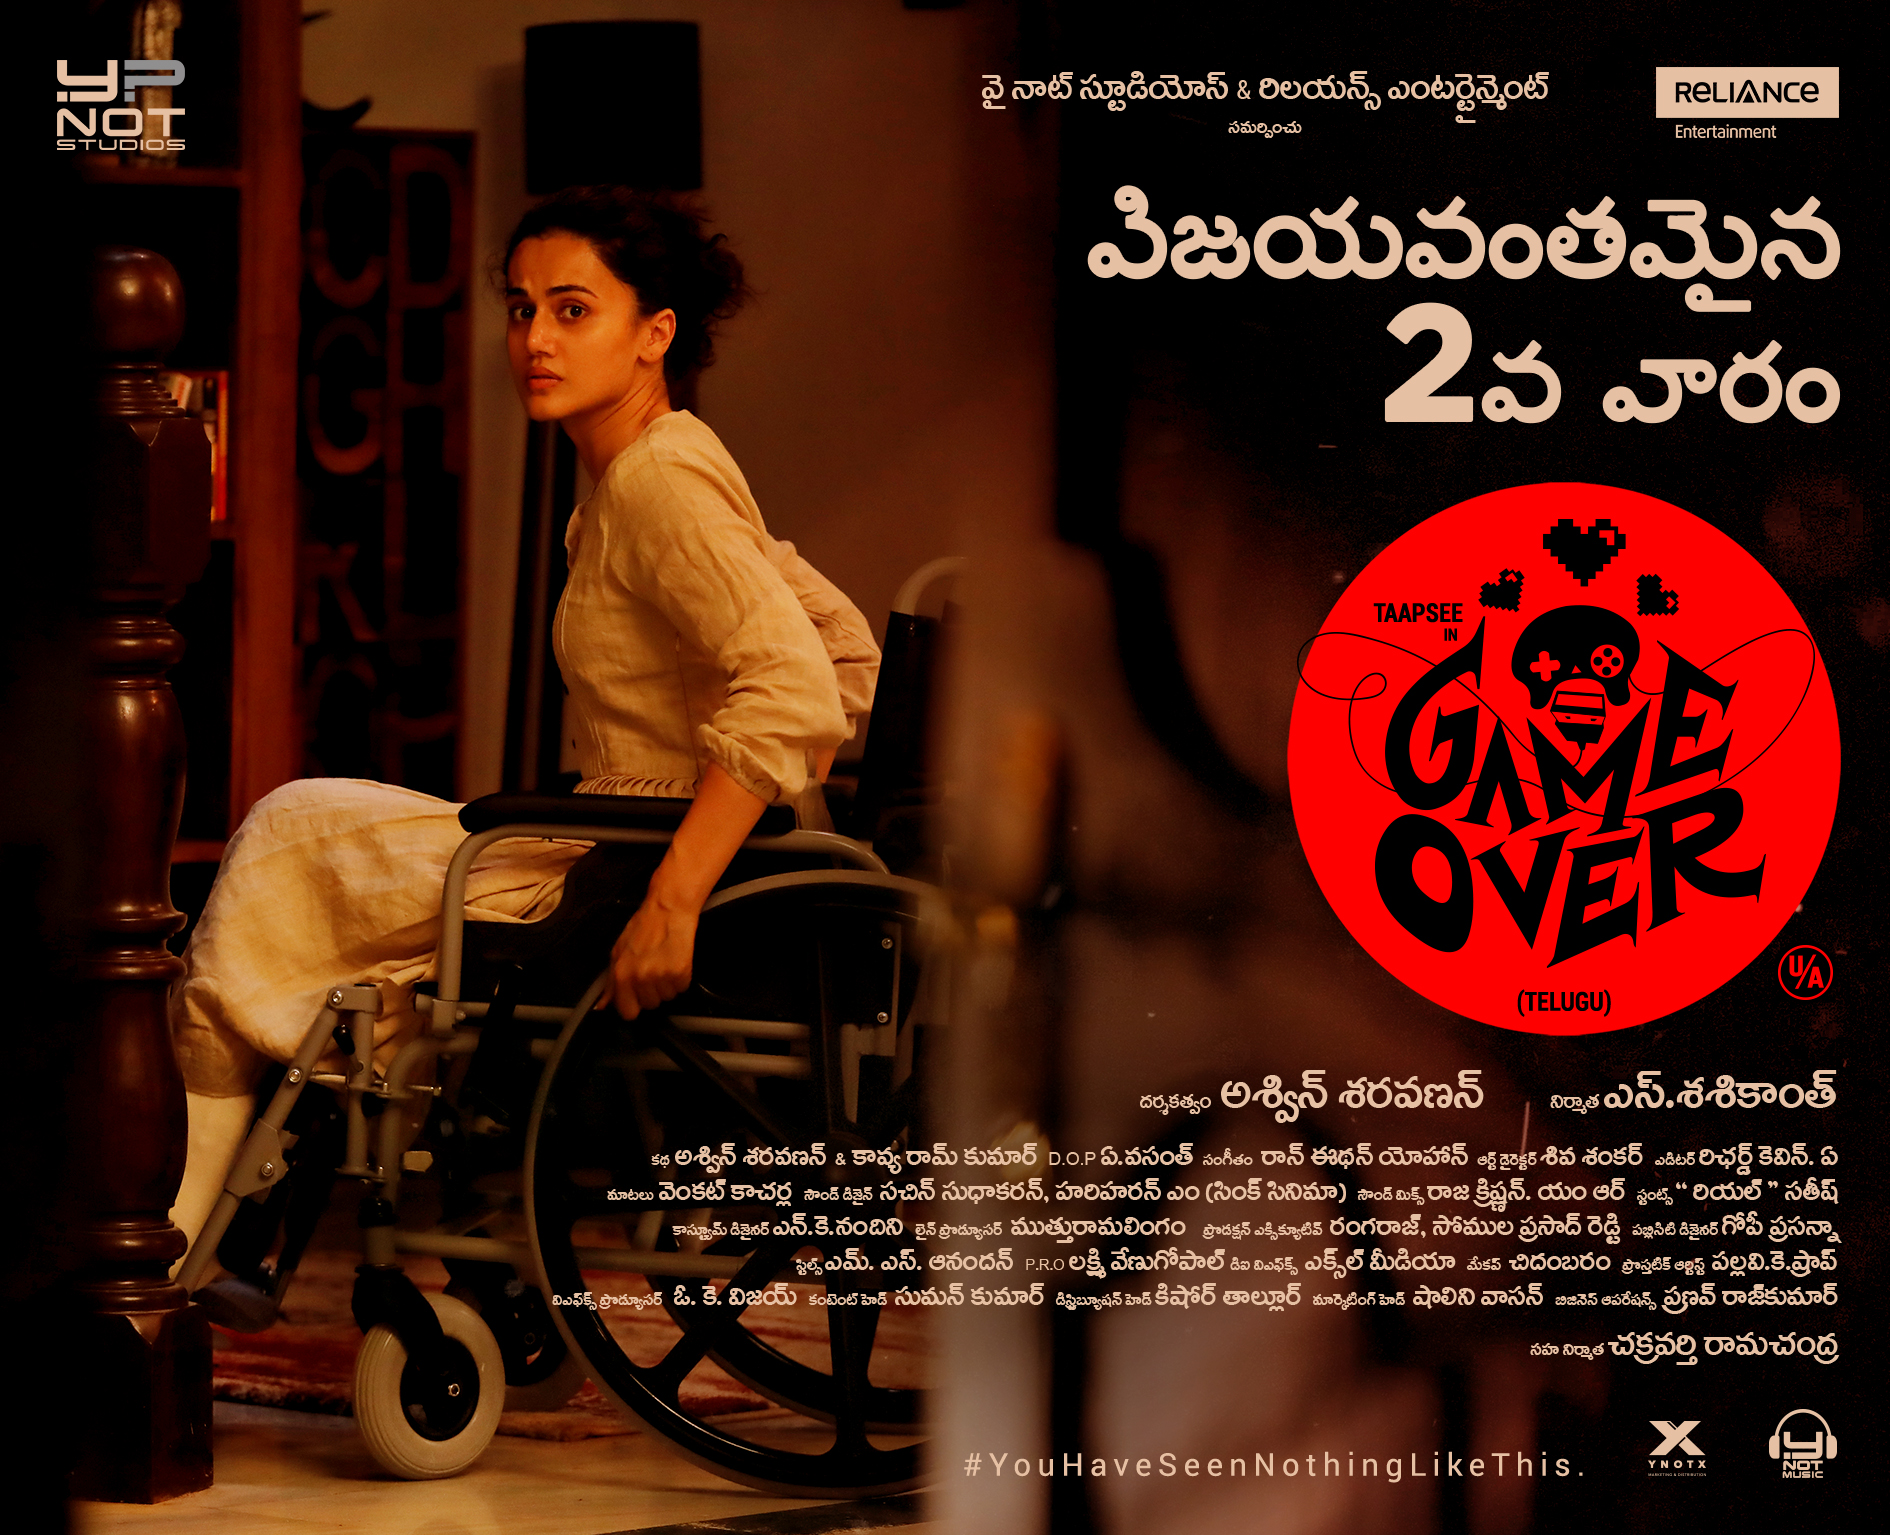 GameOver-Telugu-June21-01